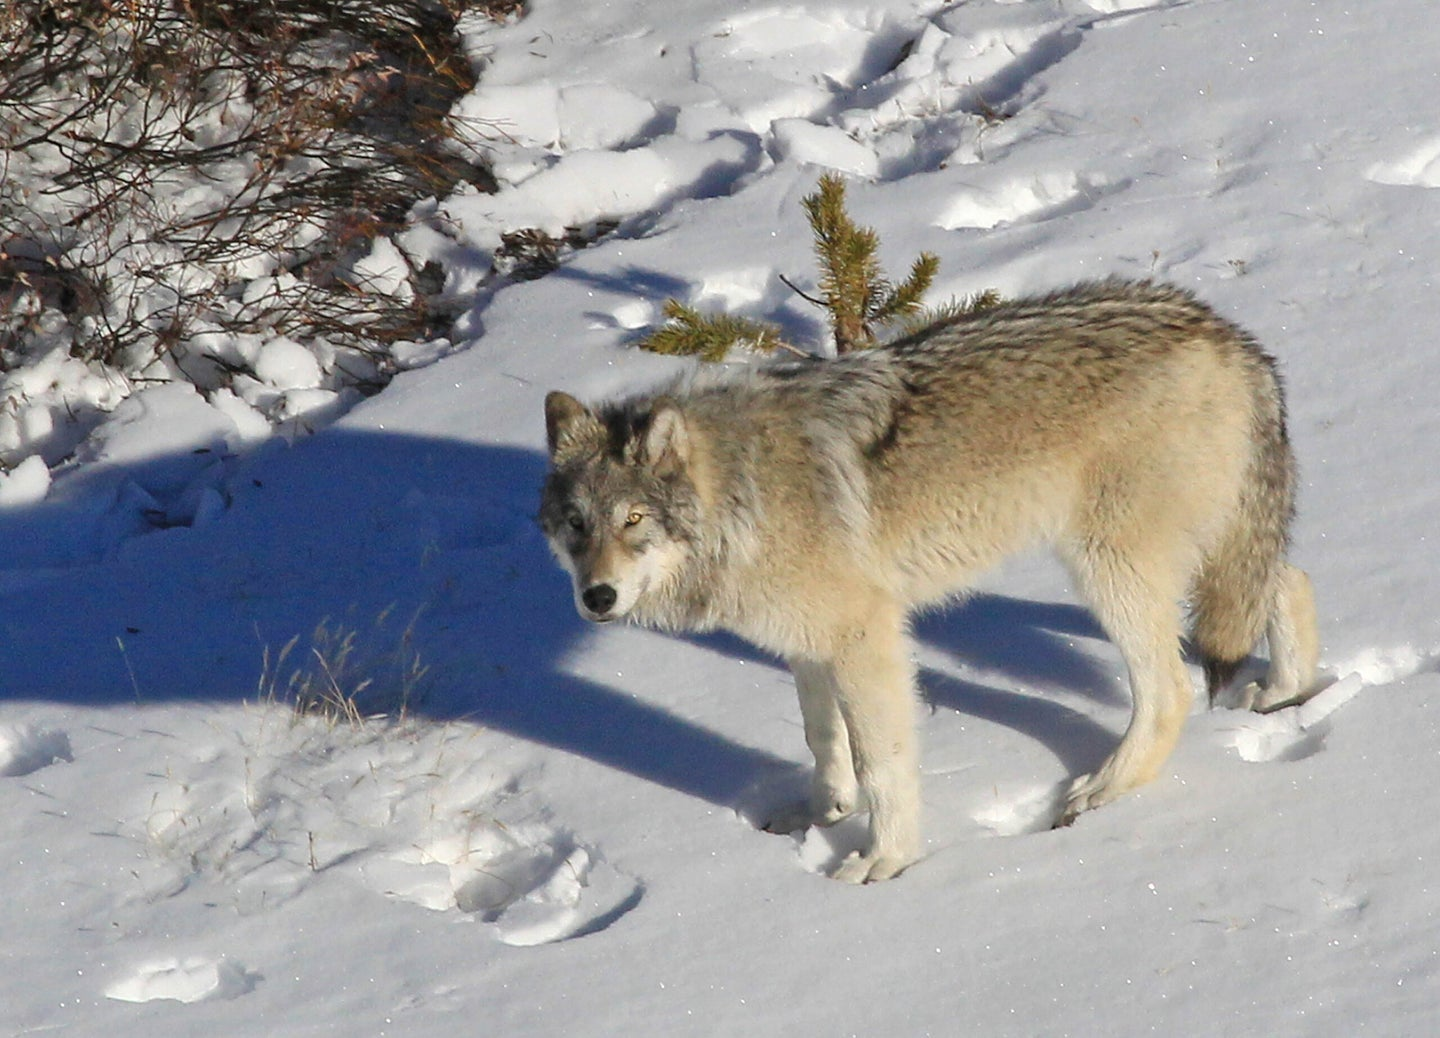 A wolf on a hillside covered in snow.